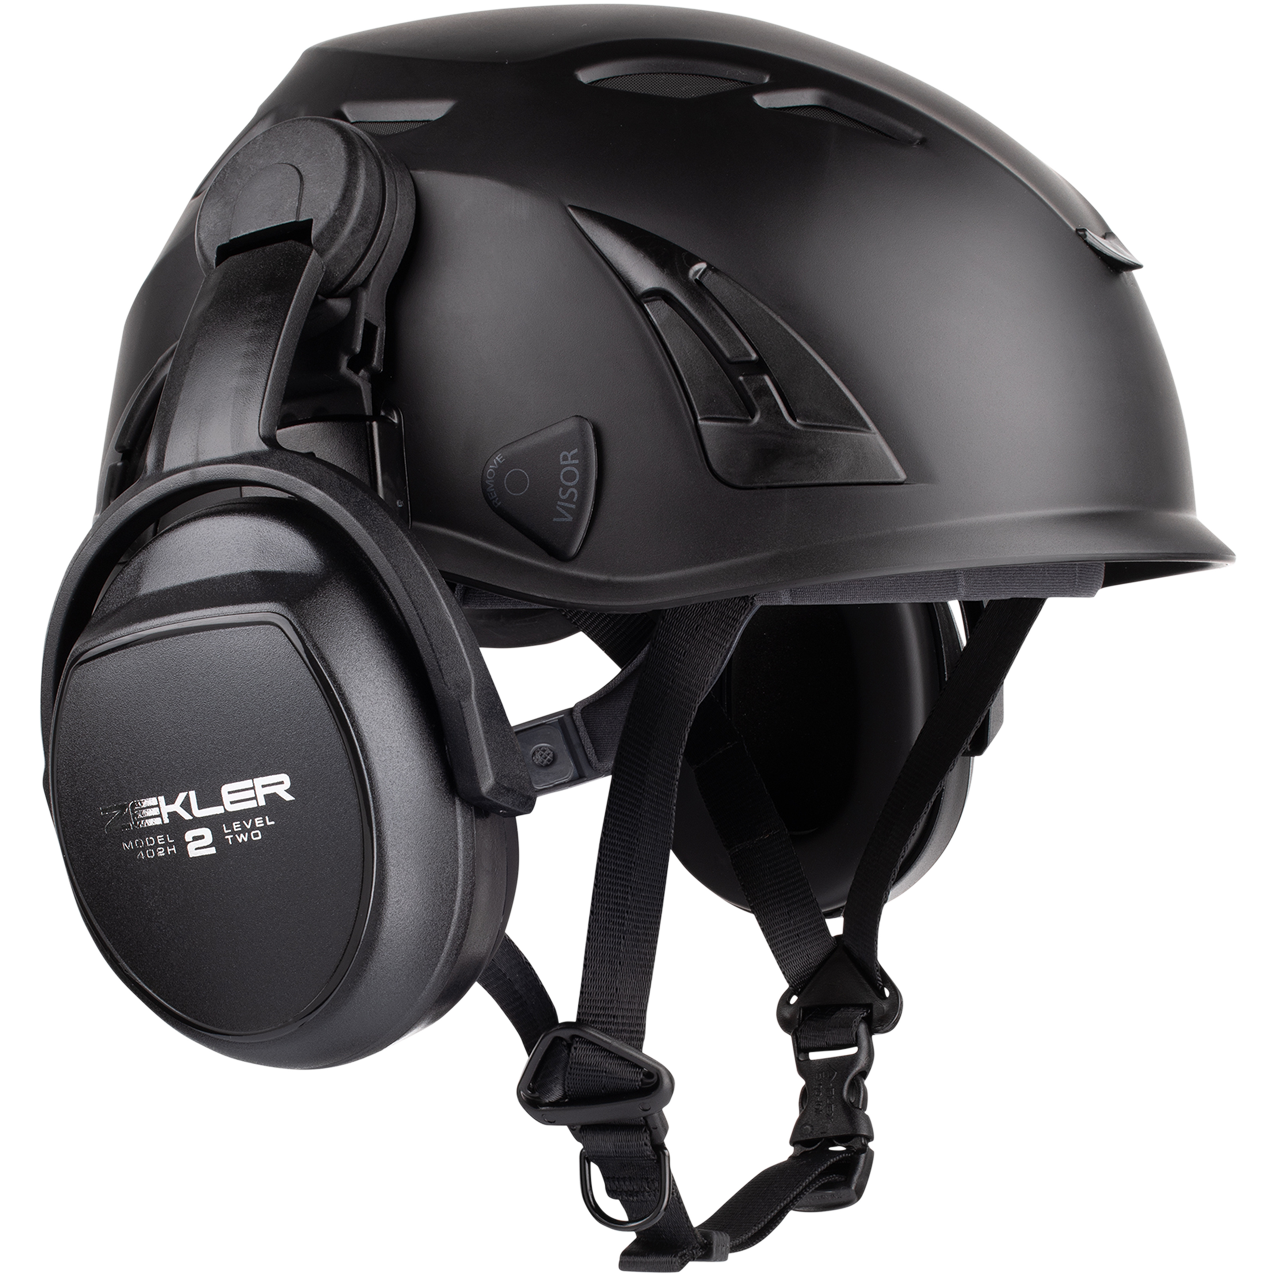 Hearing protection ZEKLER 402H